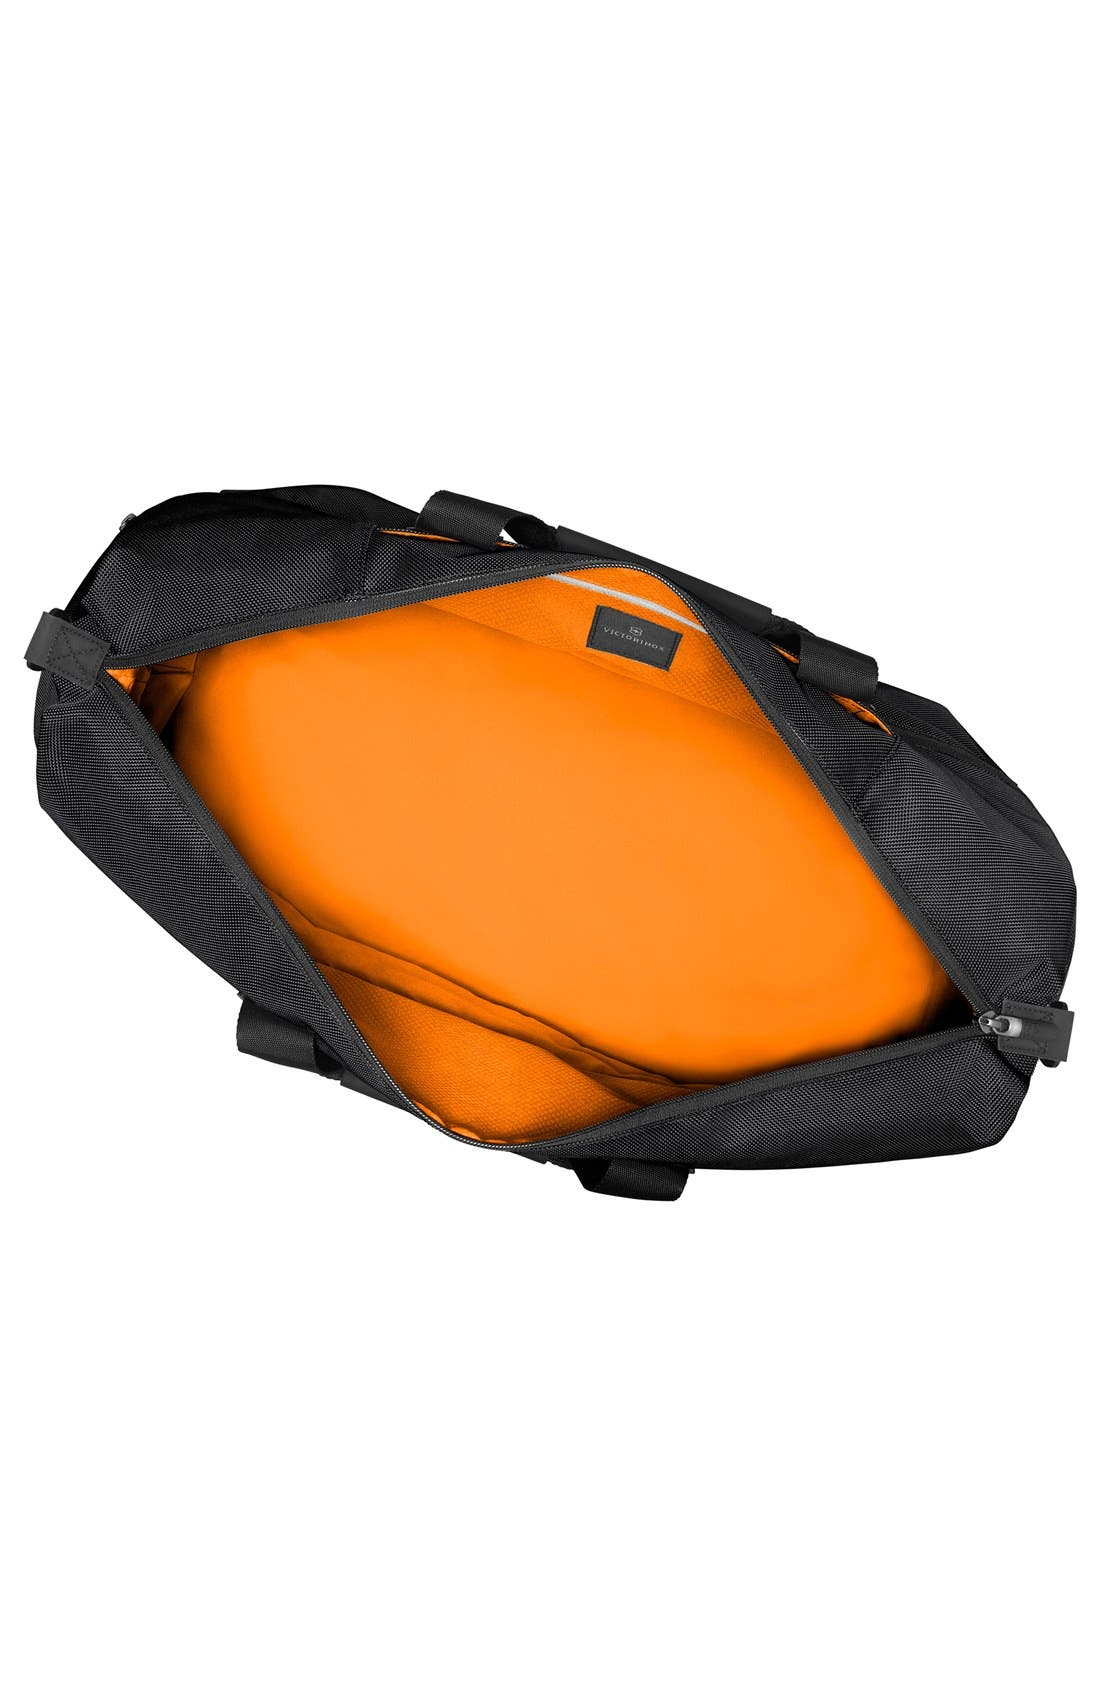 XL Duffel Bag,                             Alternate thumbnail 2, color,                             Black